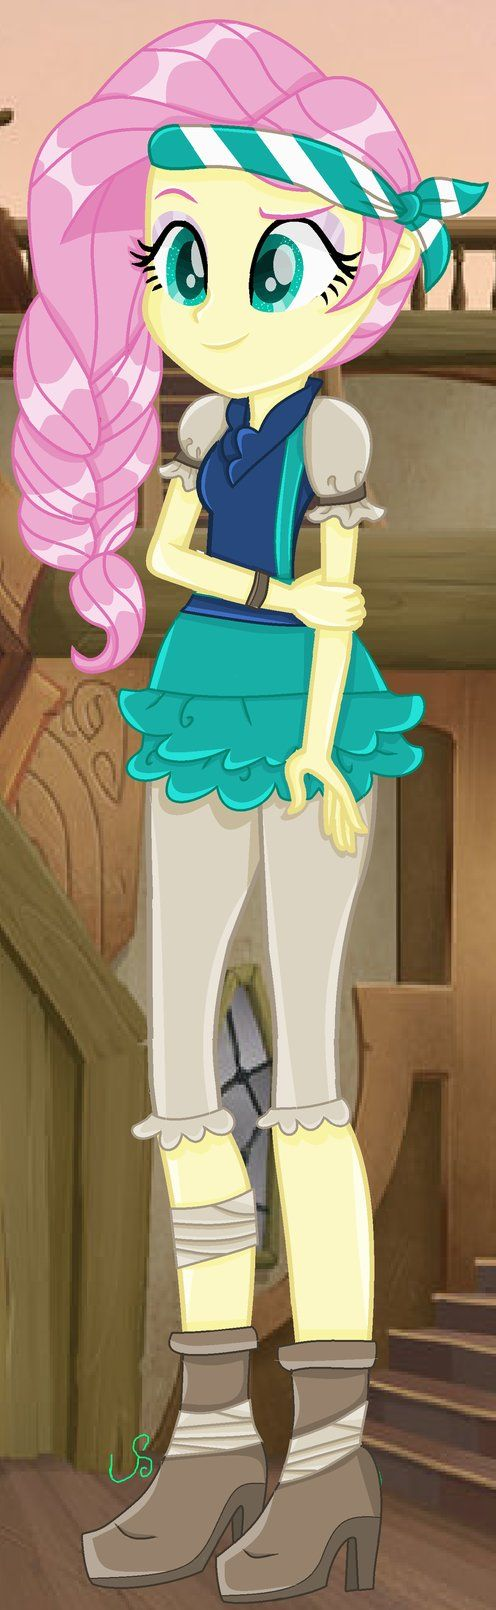 Mlp The Movie Eg Fluttershy Pirate by lightningsentry1.deviantart.com on @DeviantArt